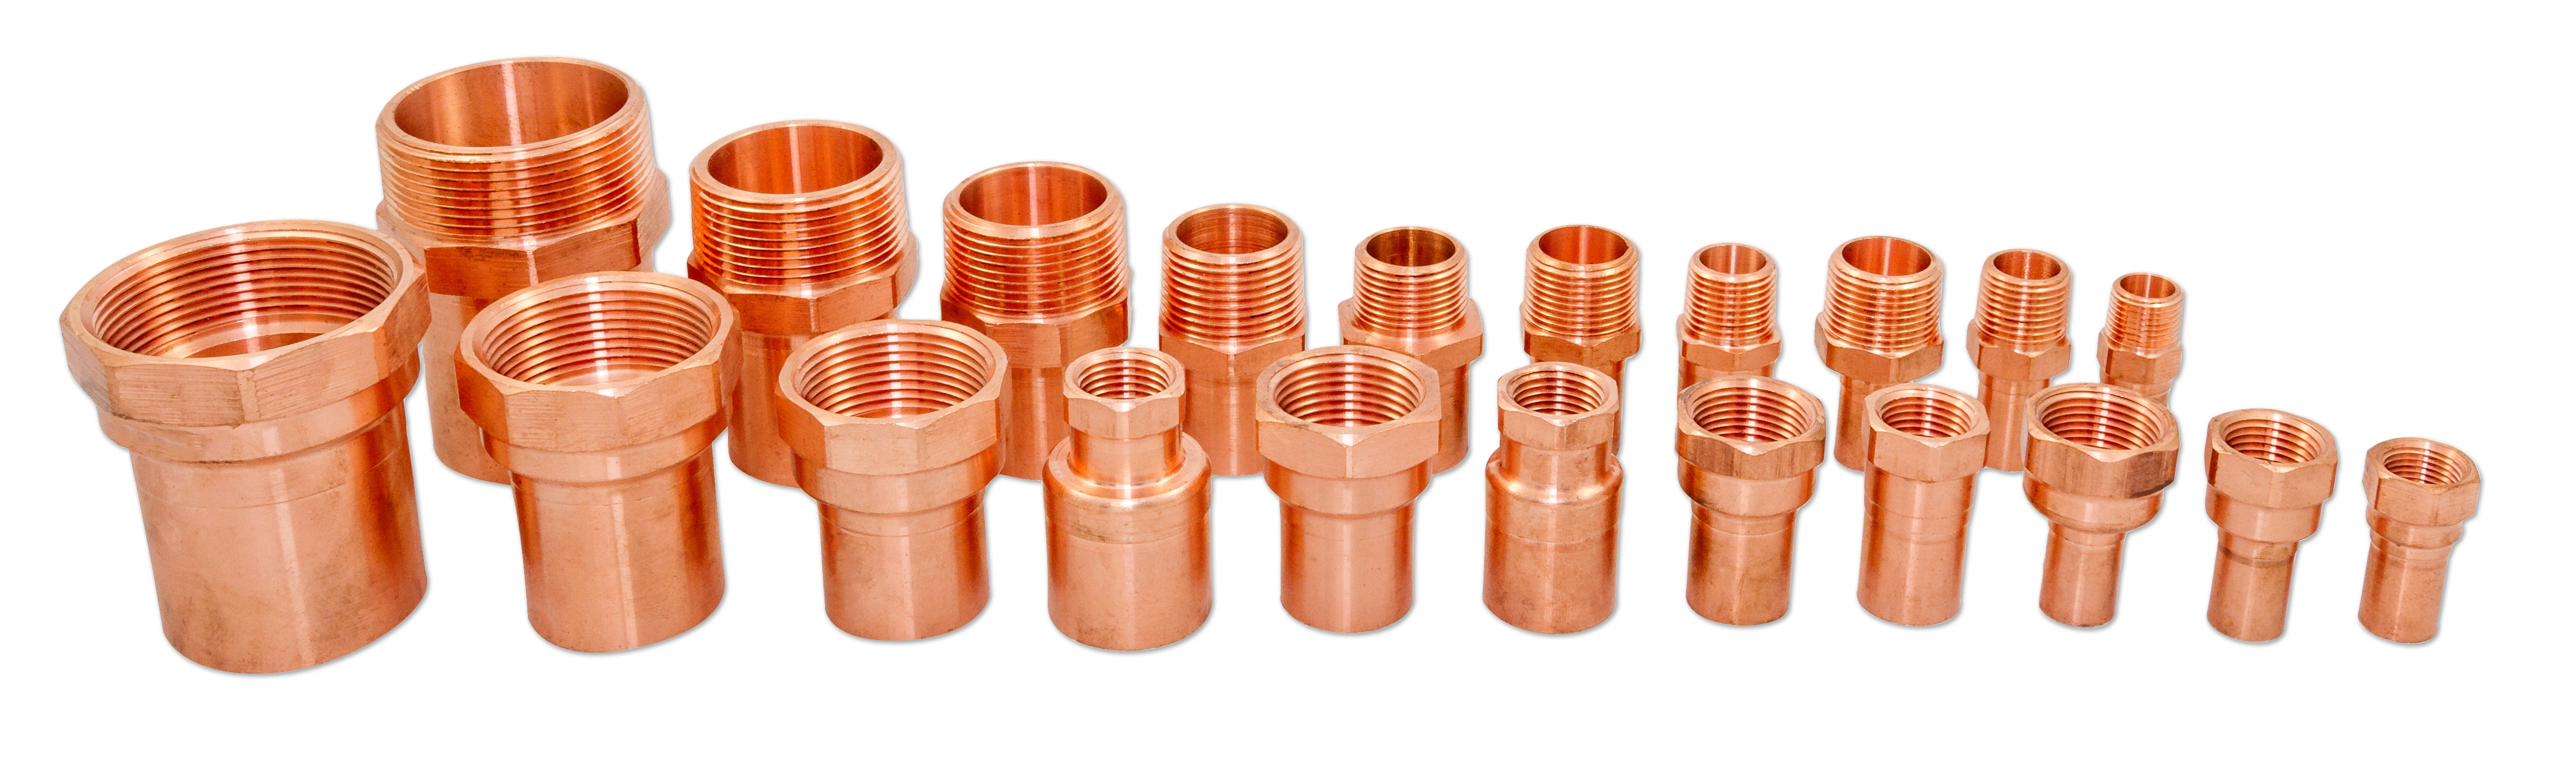 press fittings and valves extended adapters